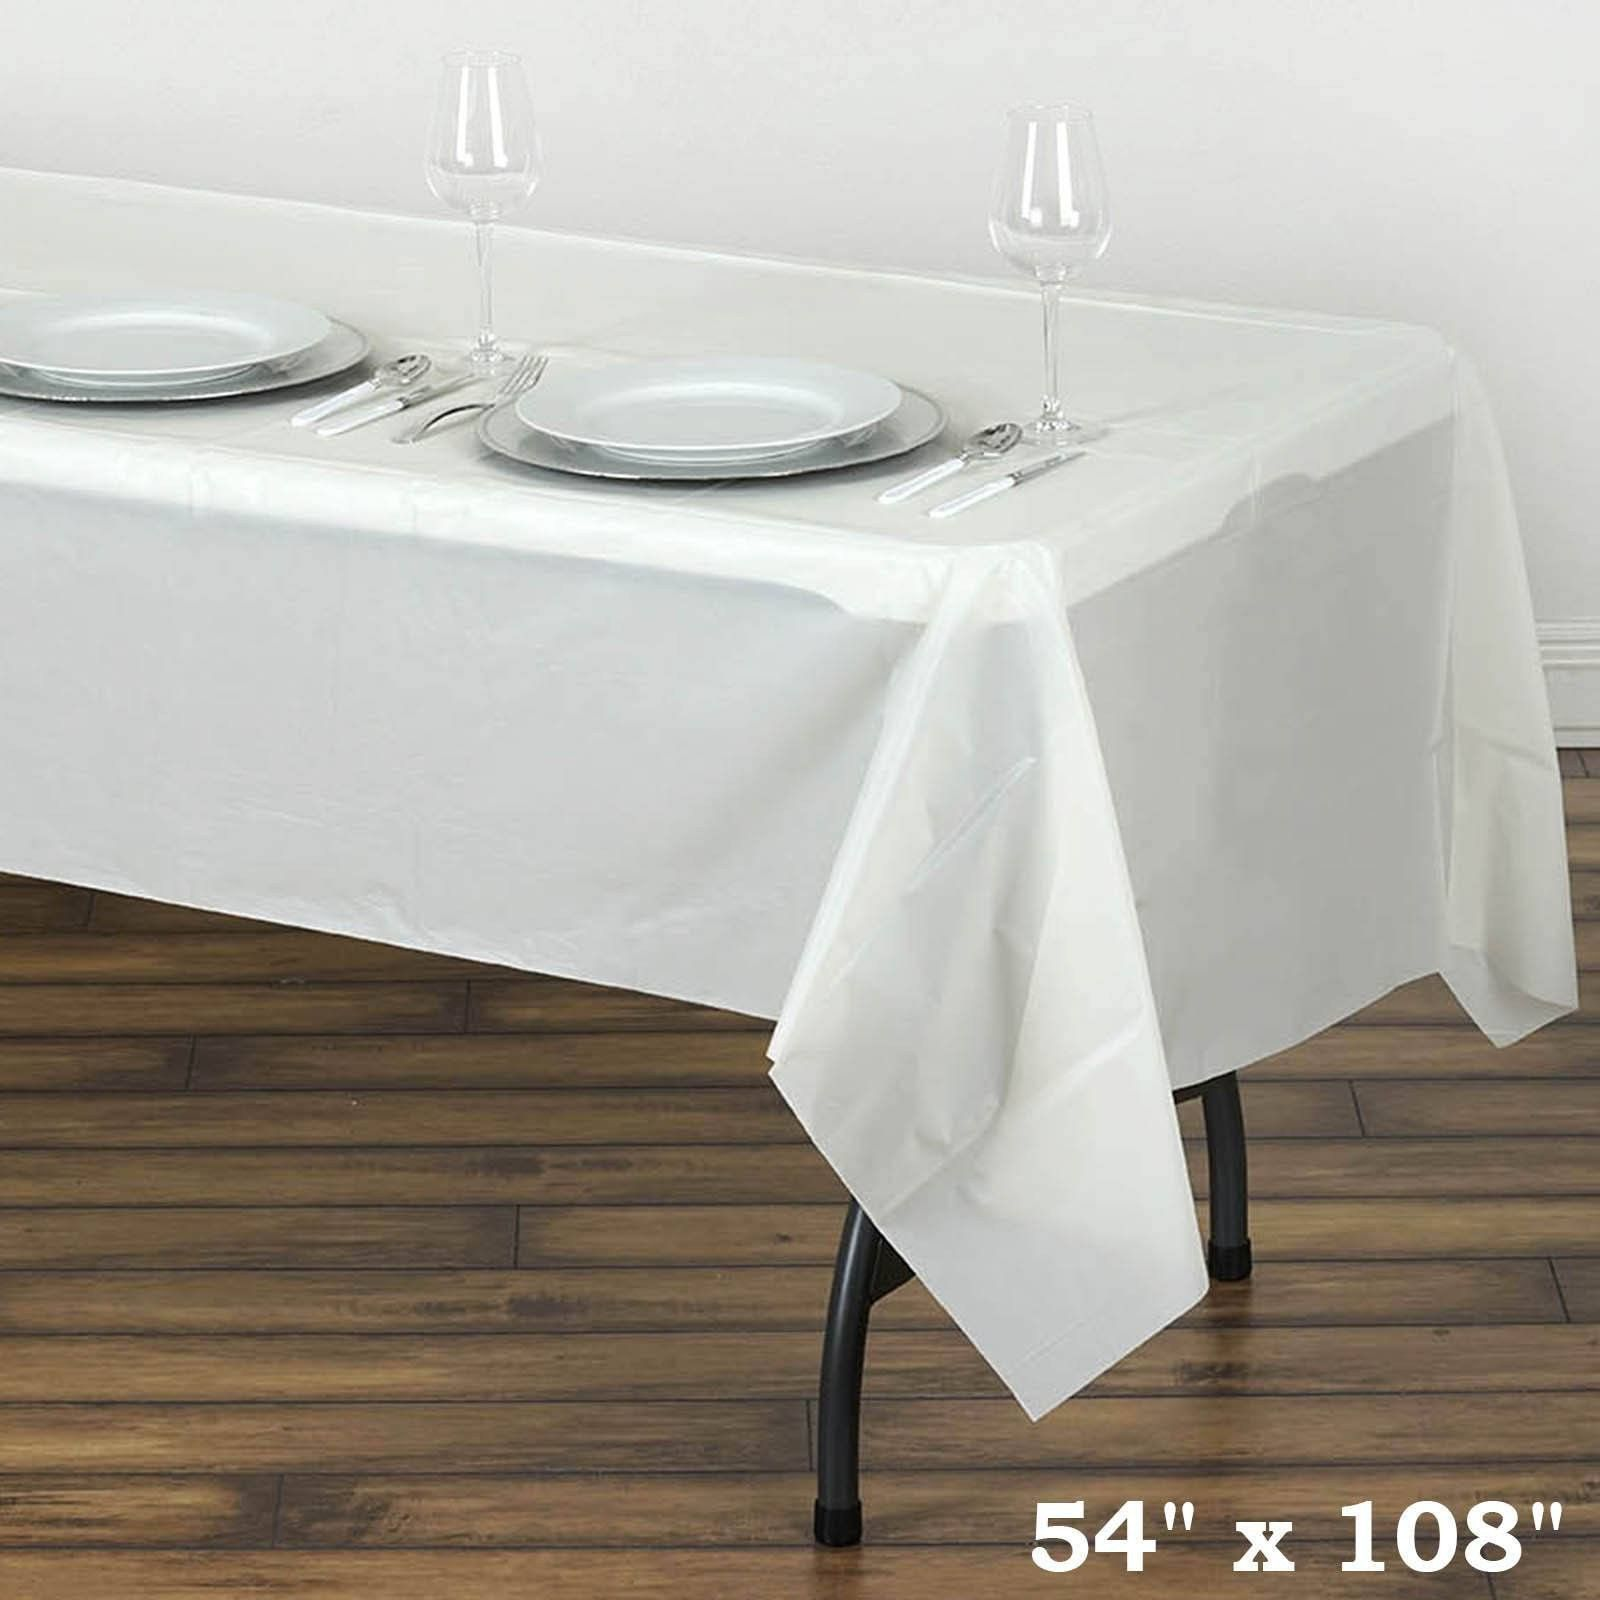 54 X 108 Ivory 10mil Thick Disposable Plastic Vinyl Rectangular Tablecloth Waterproof Tablecloth Plastic Table Covers Plastic Tables